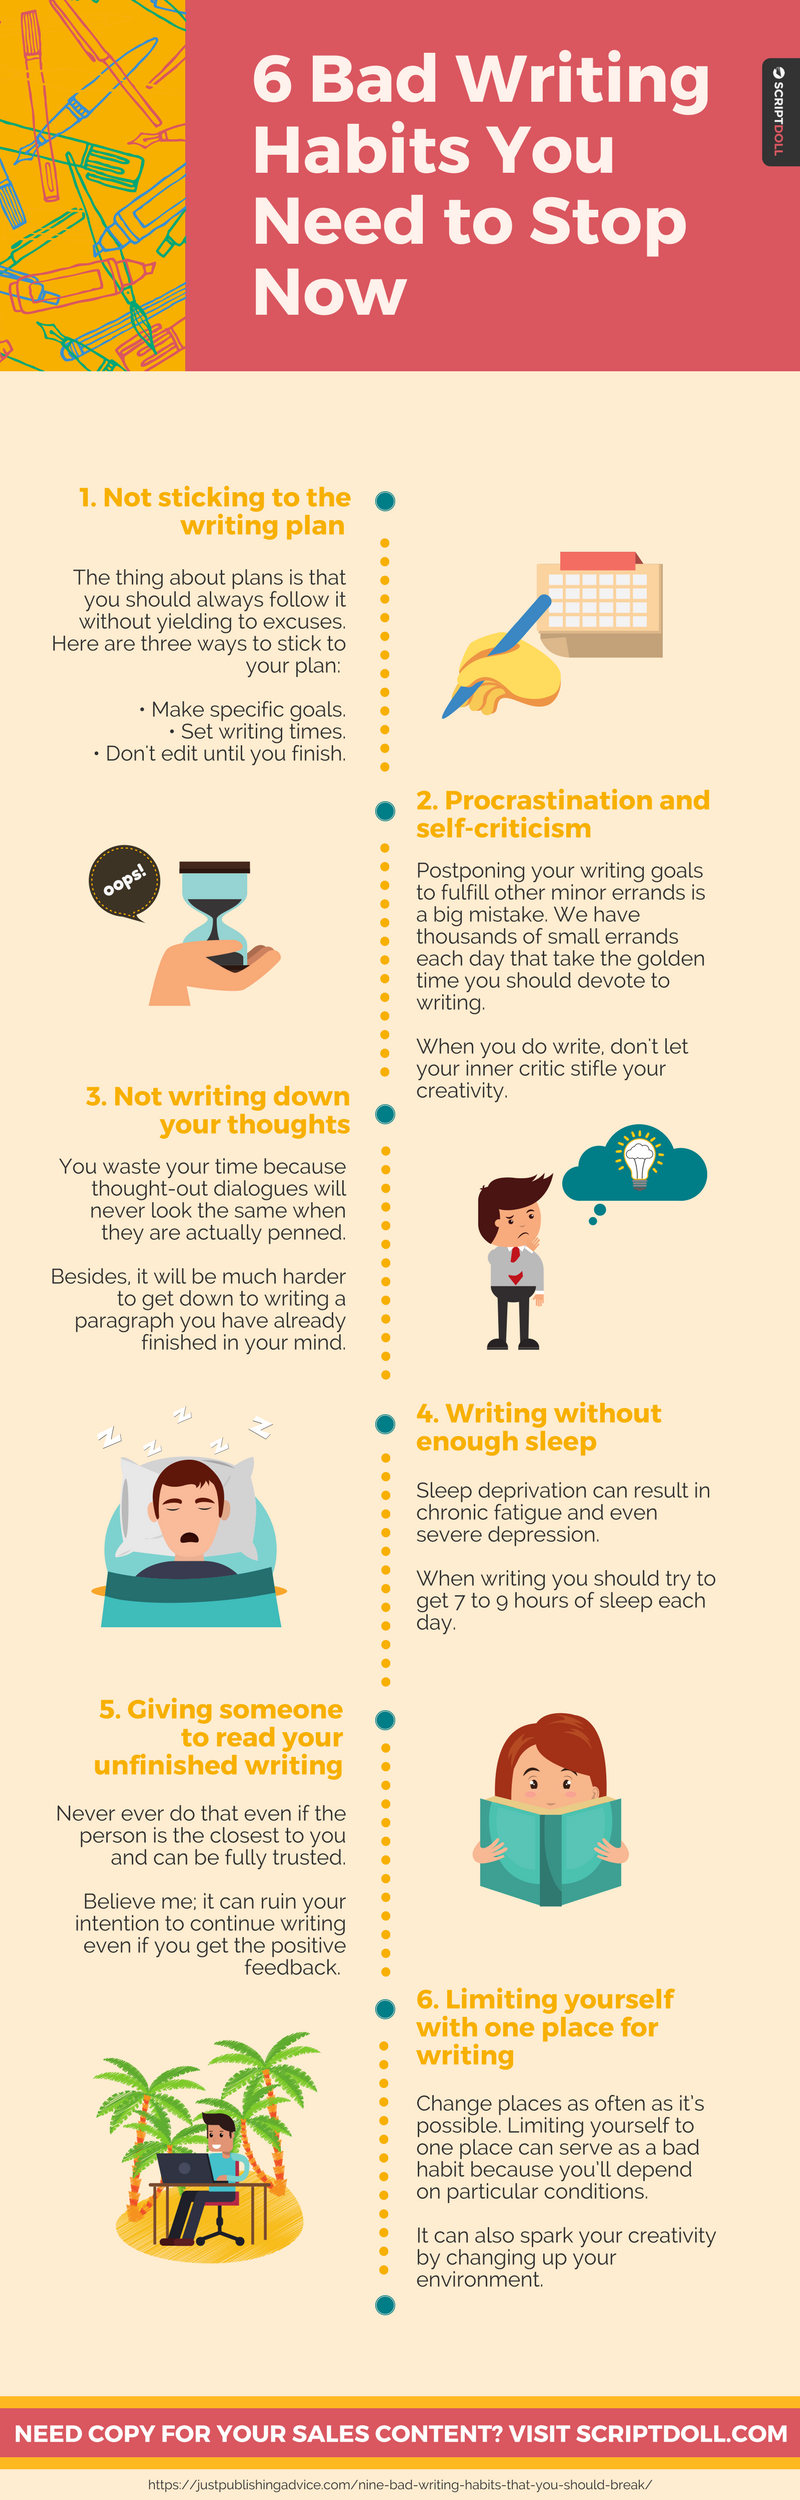 6 bad writing habits you need to stop now